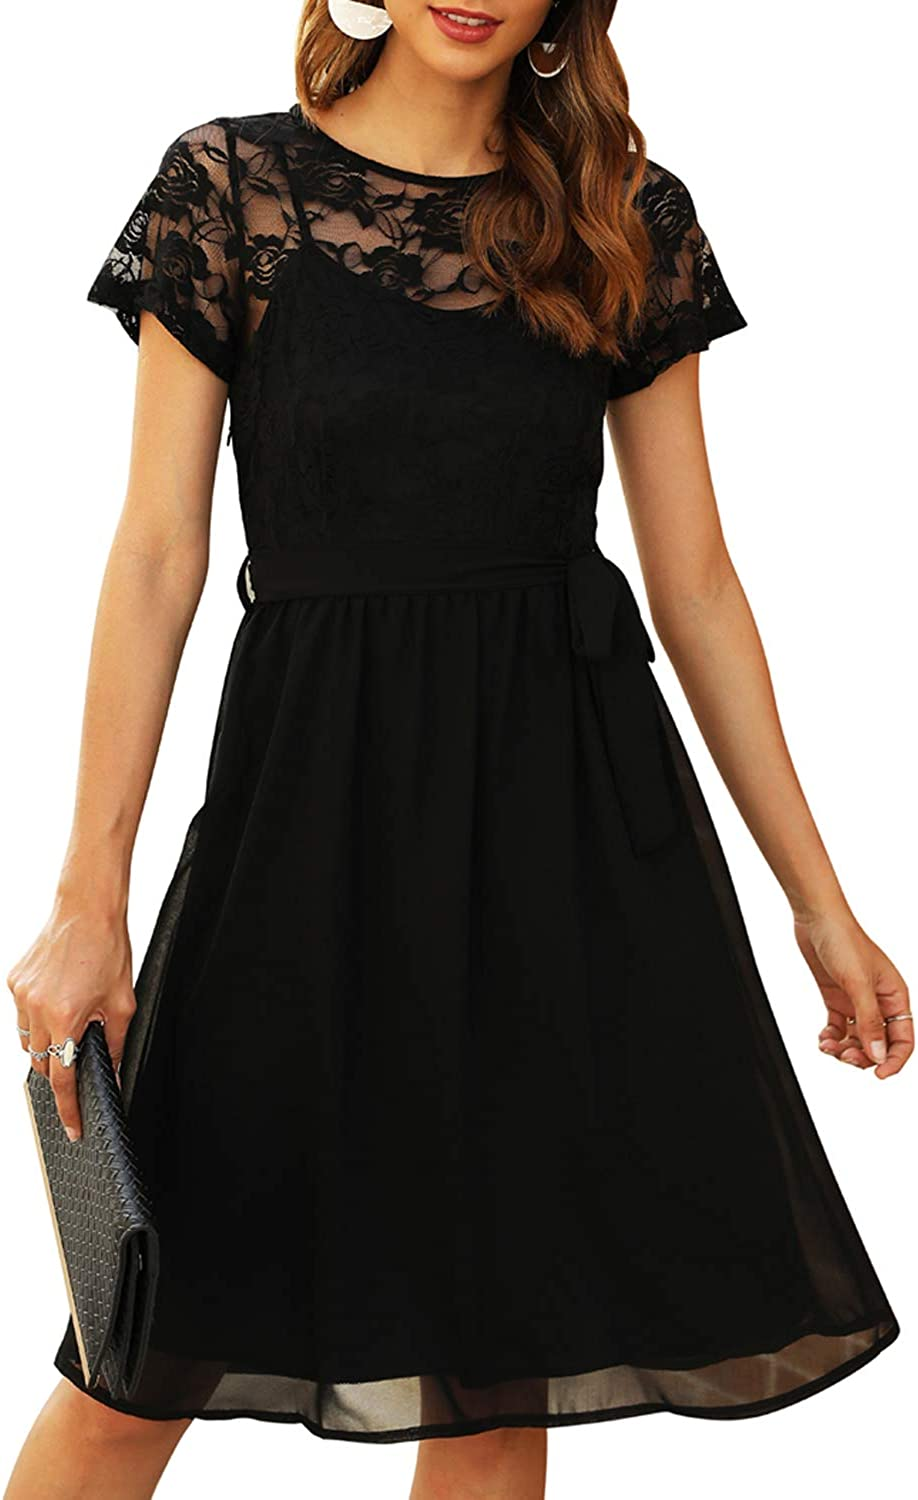 Manydress Women's Scooped Neckline Floral lace Top Cocktail Party Midi Dress MY058